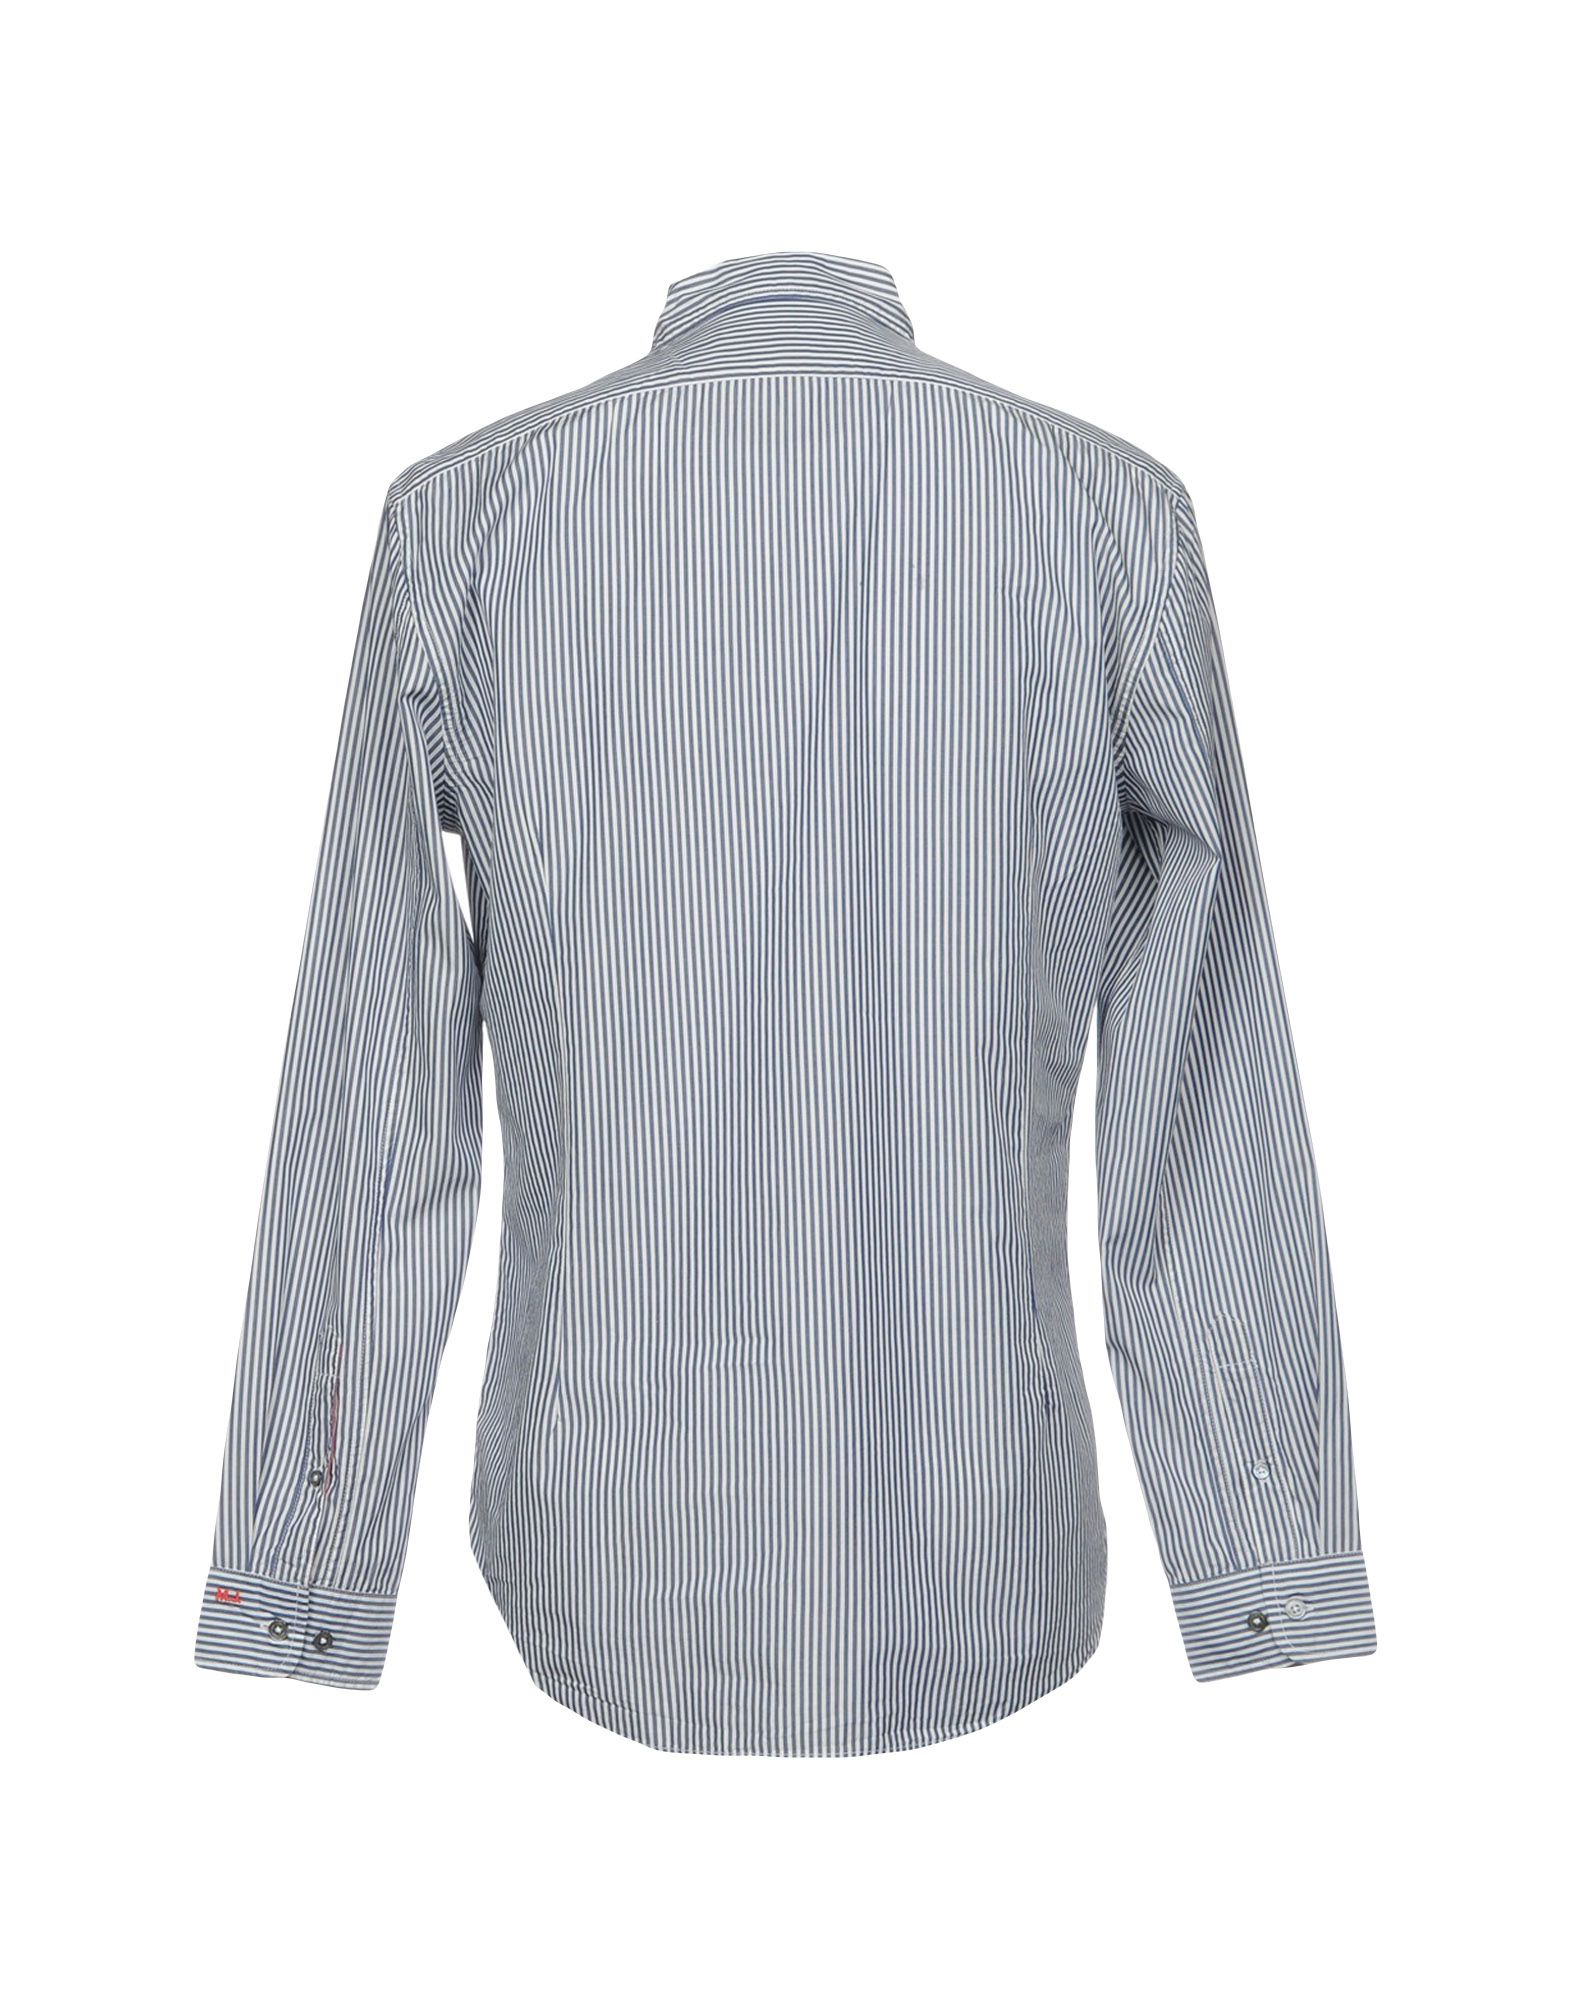 Camicia A Righe Righe Righe Marc By Marc Jacobs Uomo - 38690806OF 677b0c